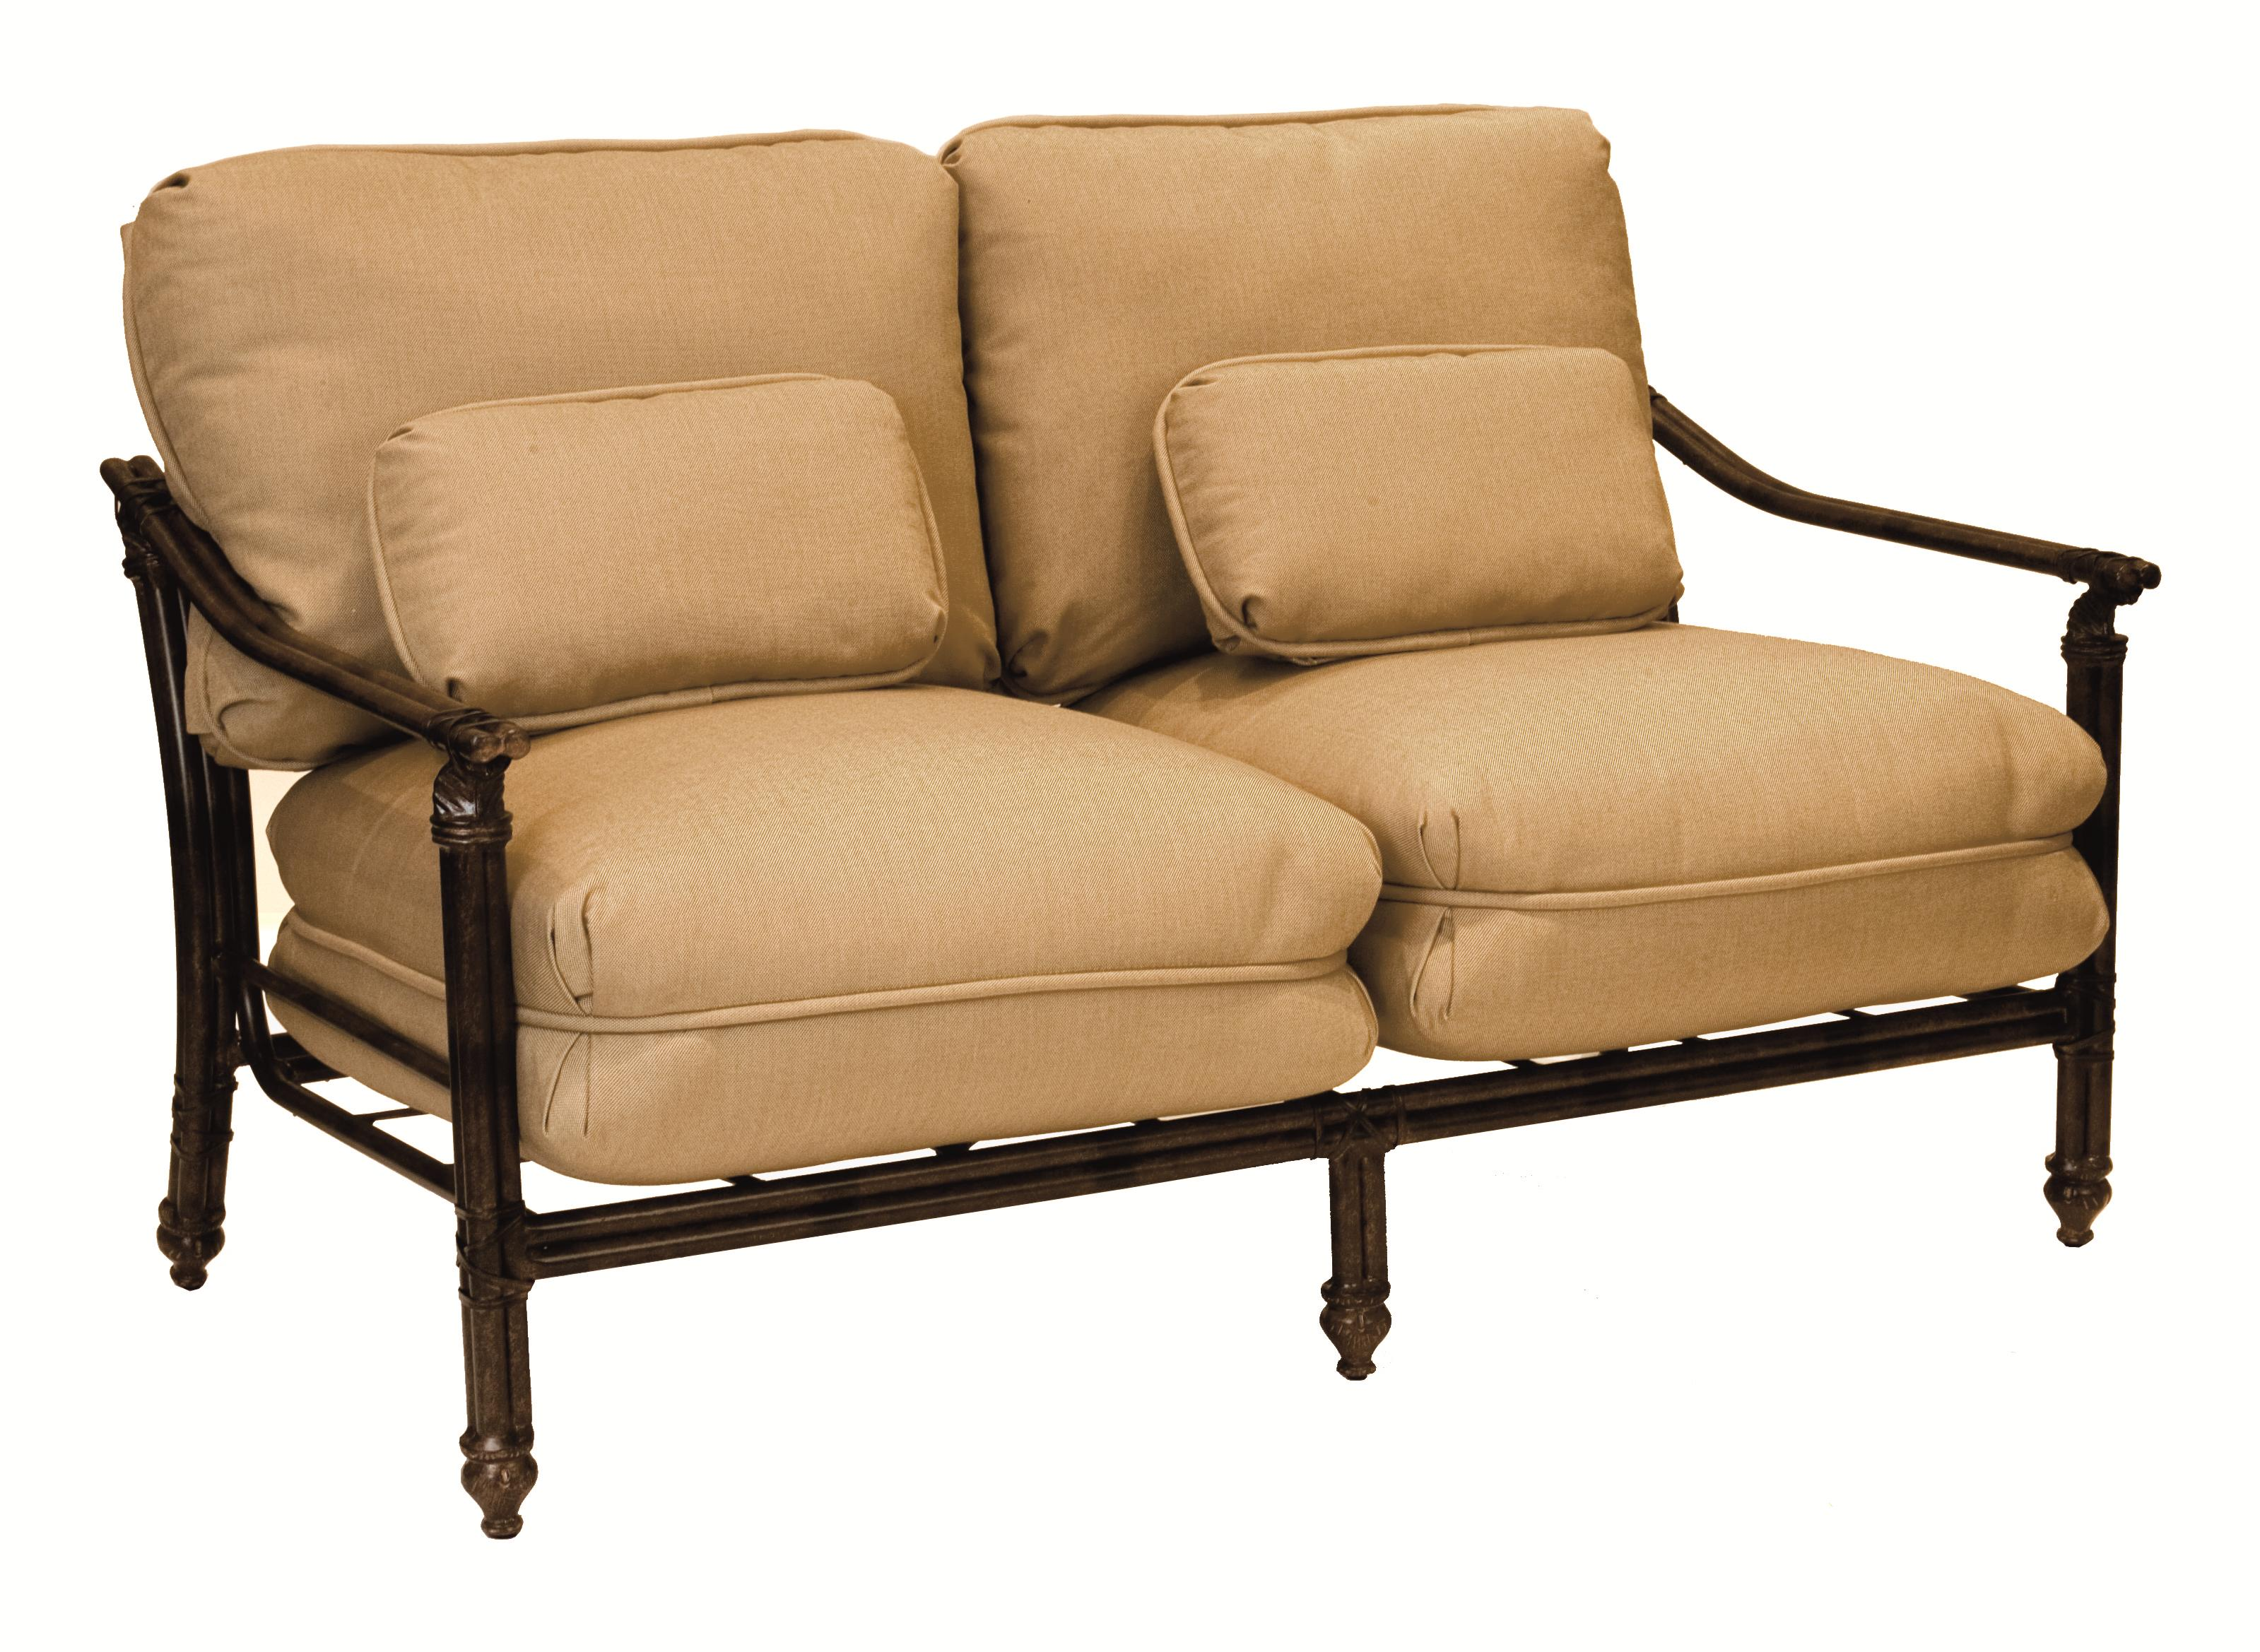 Coco Isle Cushioned Loveseat with Two Kidney Pillows by Castelle by Pride Family Brands at Michael Alan Furniture & Design